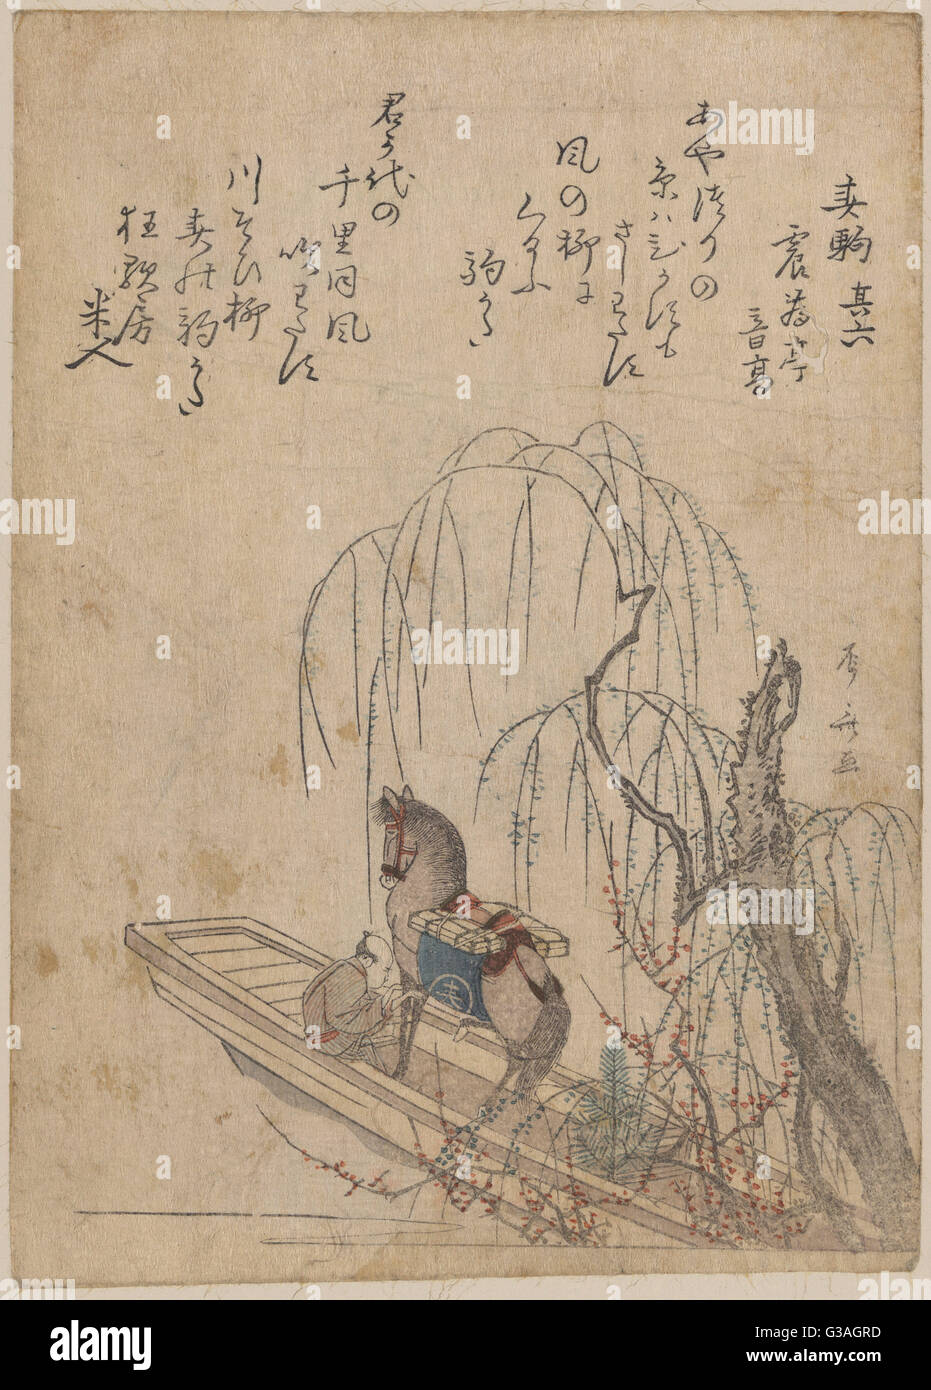 komagata near asakusa print shows a man and a horse in a boat with